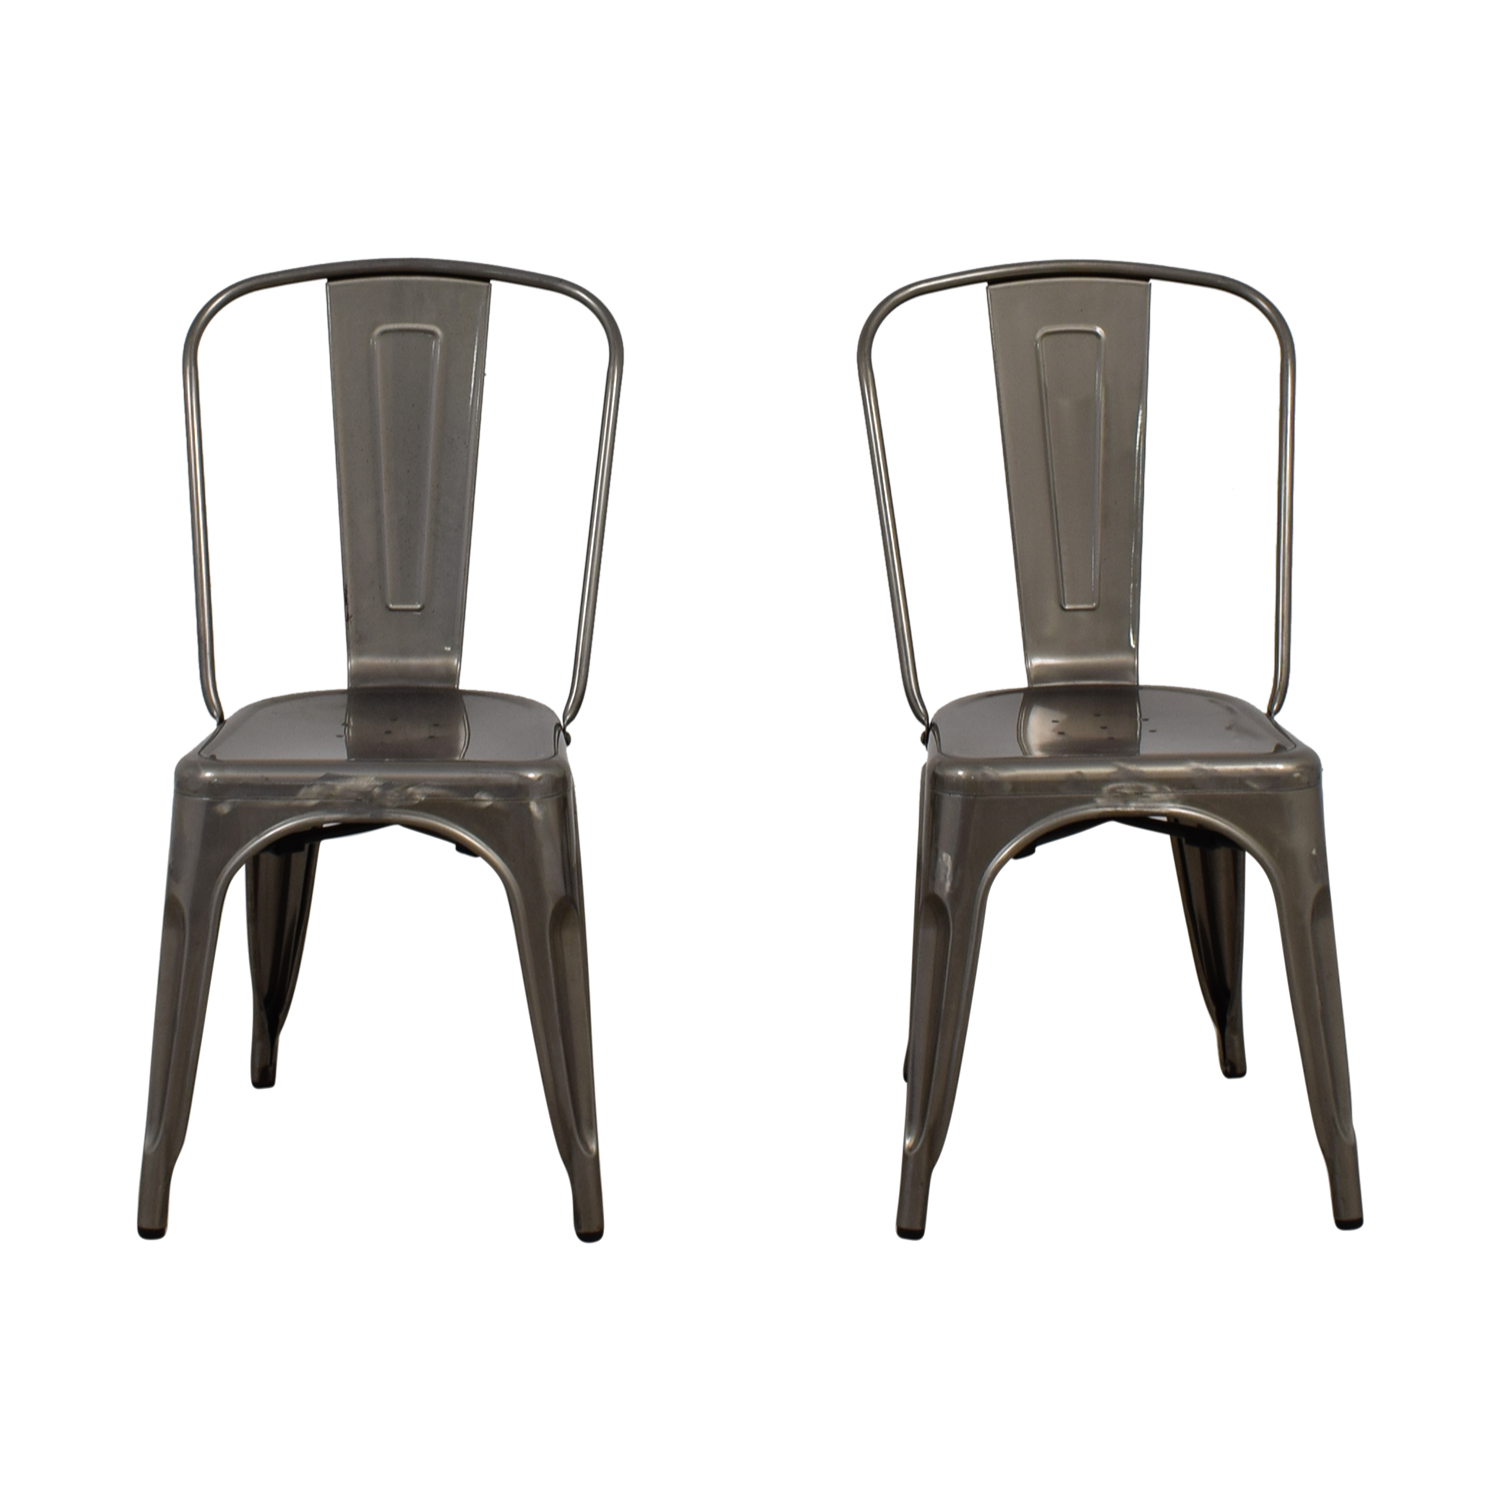 90 Off Brushed Metal Bistro Chairs Chairs